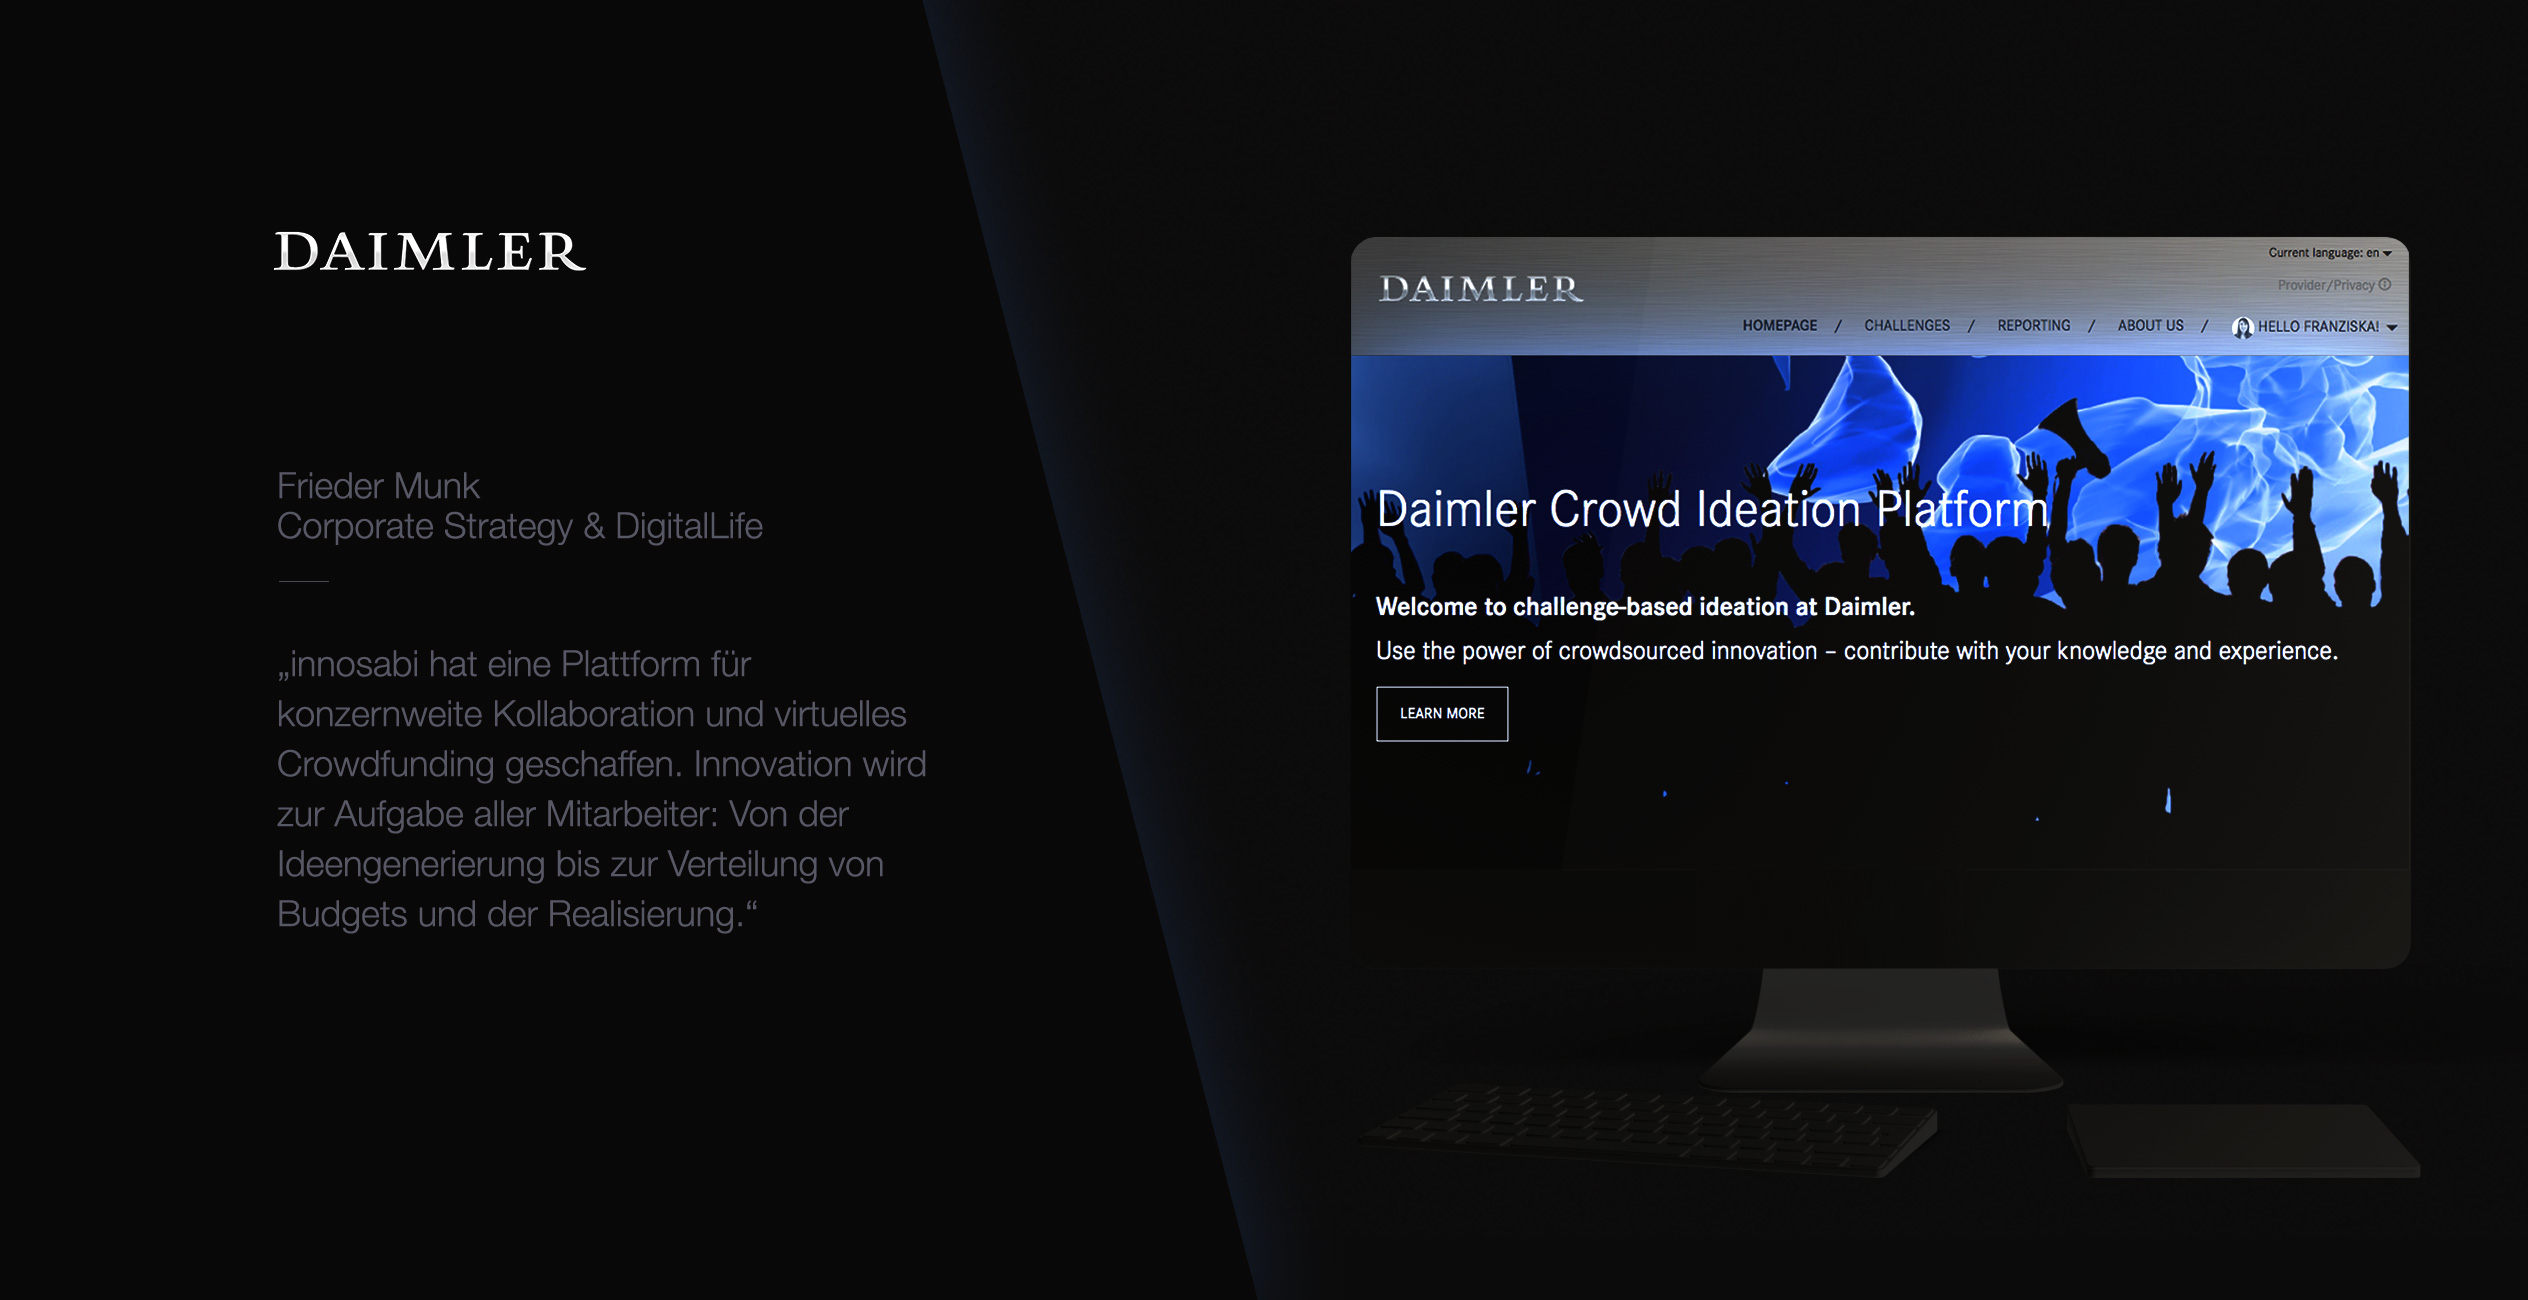 Daimler uses innosabi launch pad to engage all its employees in the generation of ideas for new technologies and business opportunities. All employees can pitch ideas, join discussions, and distribute virtual budget among the ideas. The ones which reach their funding goals are then awarded with the equivalent resources for further development.